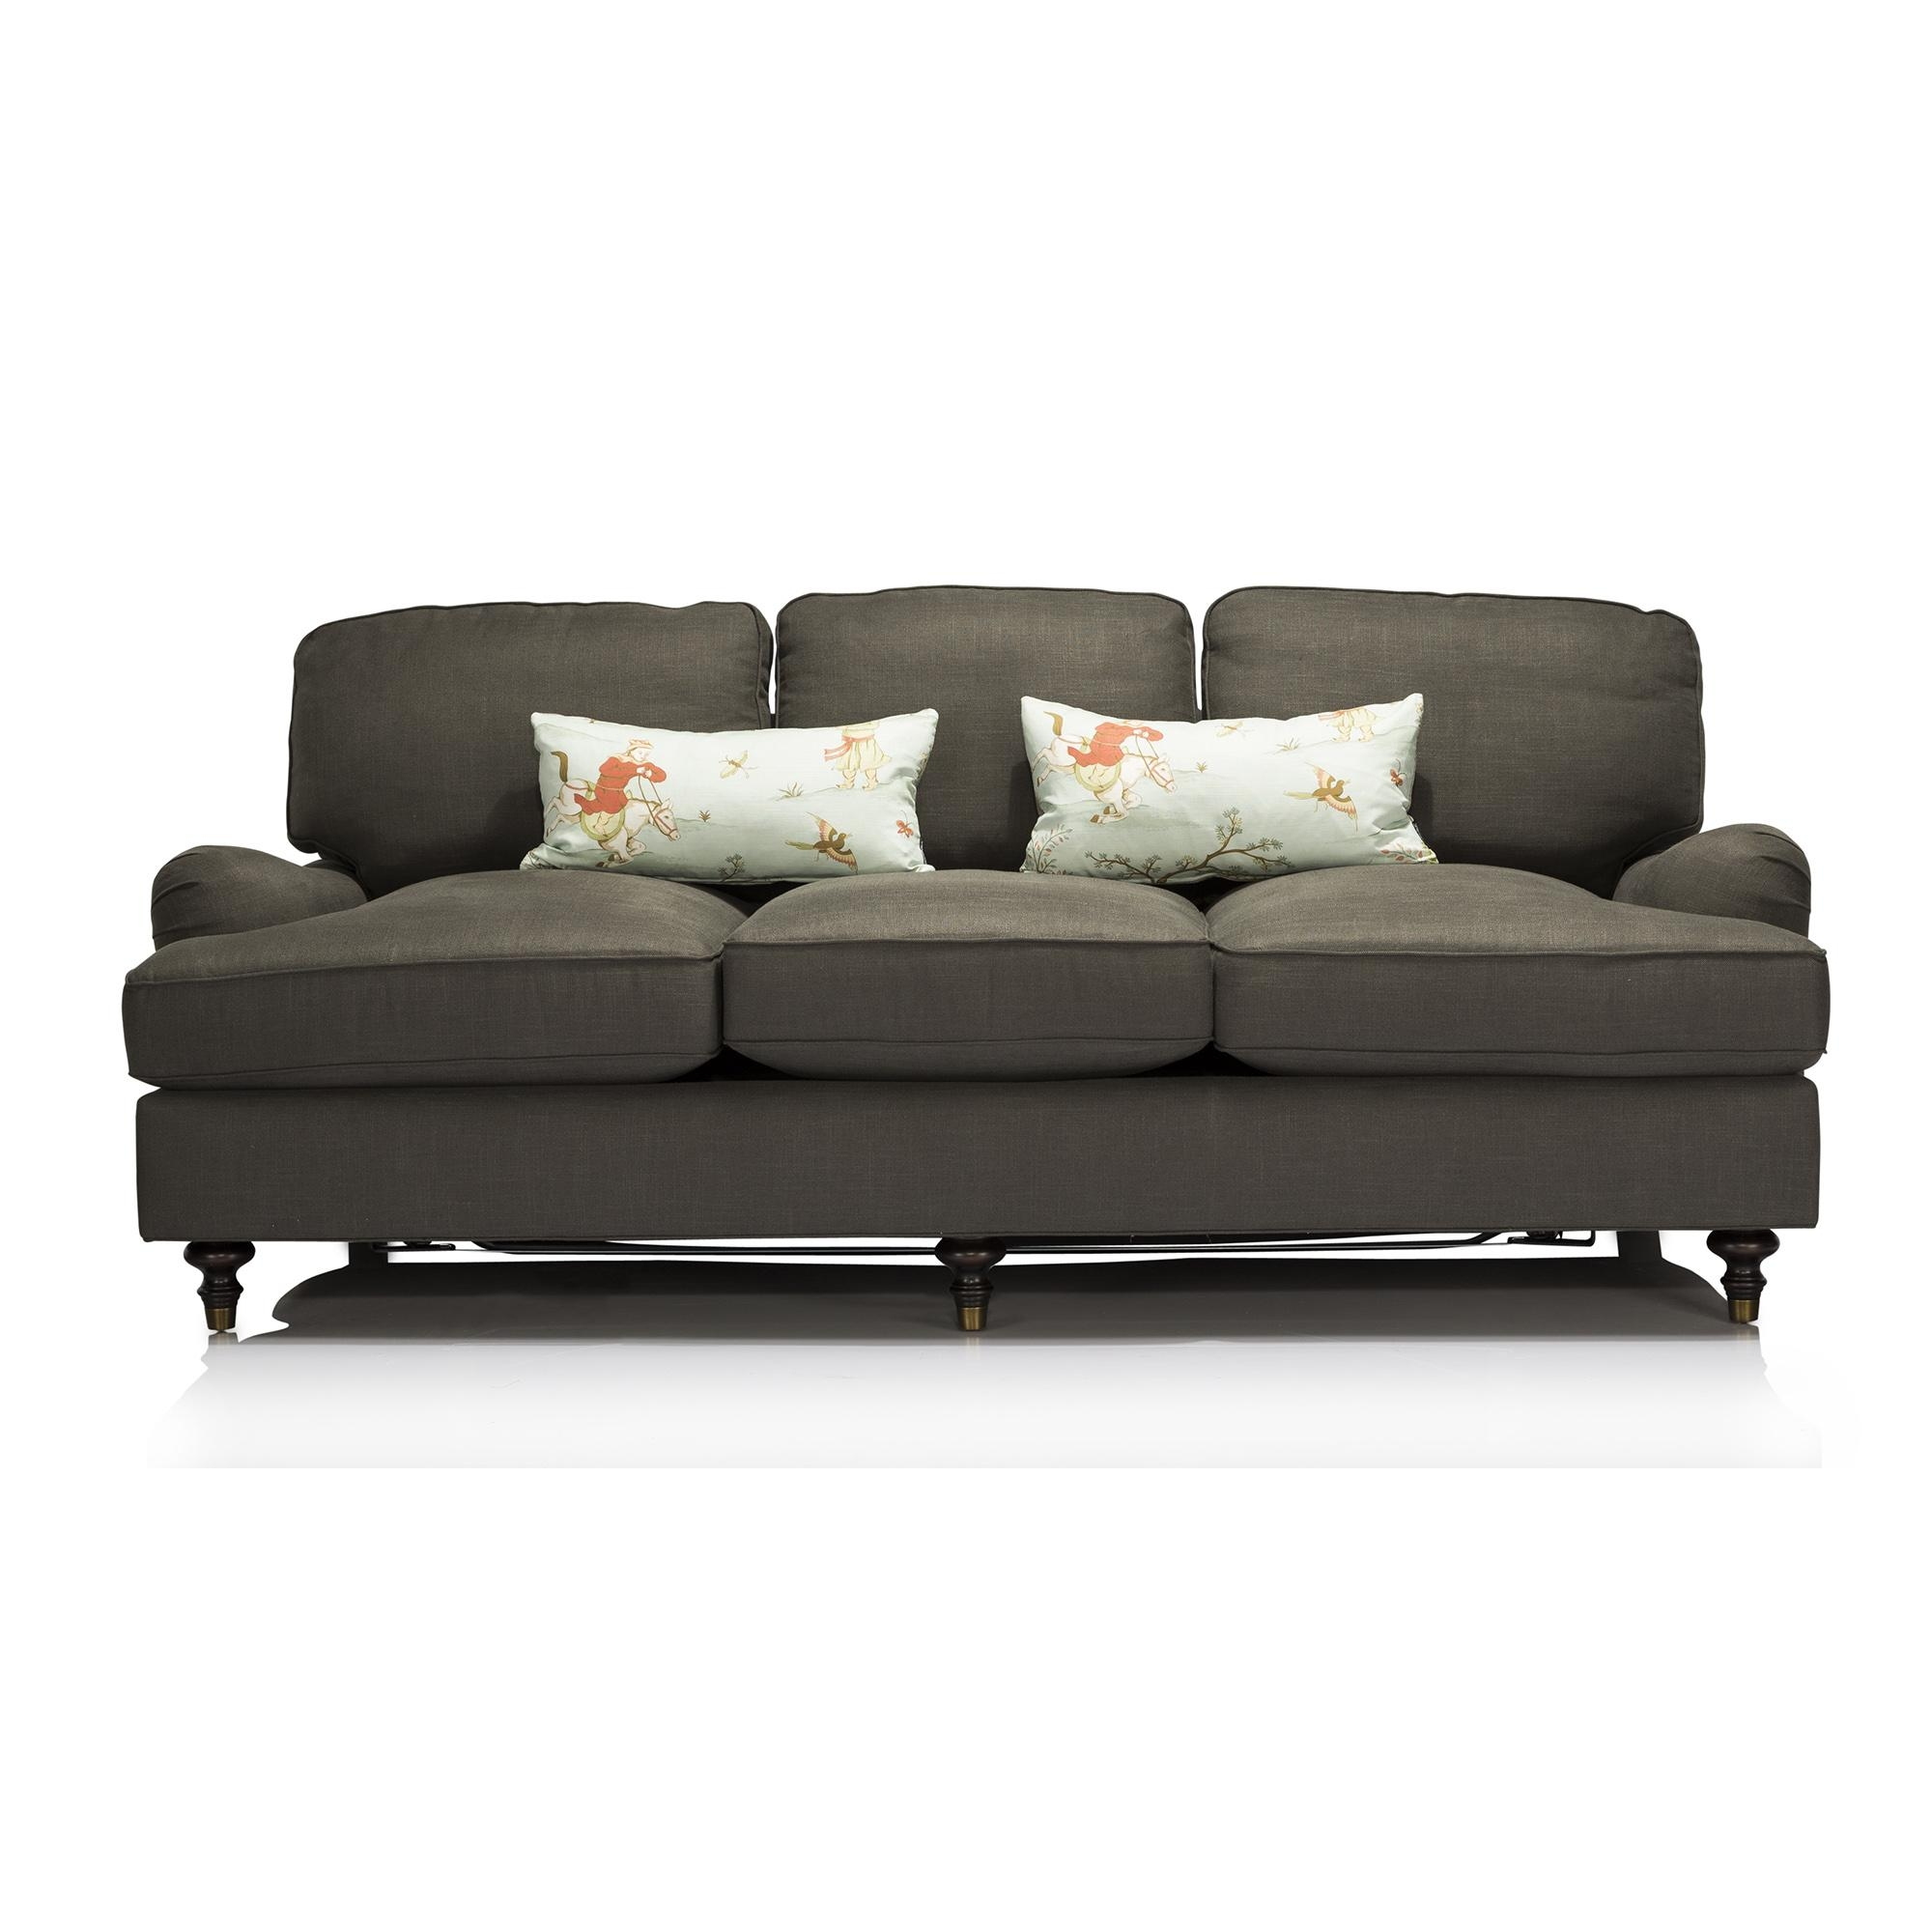 Sofas : Magnificent Sofa Throws Pb Comfort Roll Arm English Roll Pertaining To Classic English Sofas (View 6 of 21)